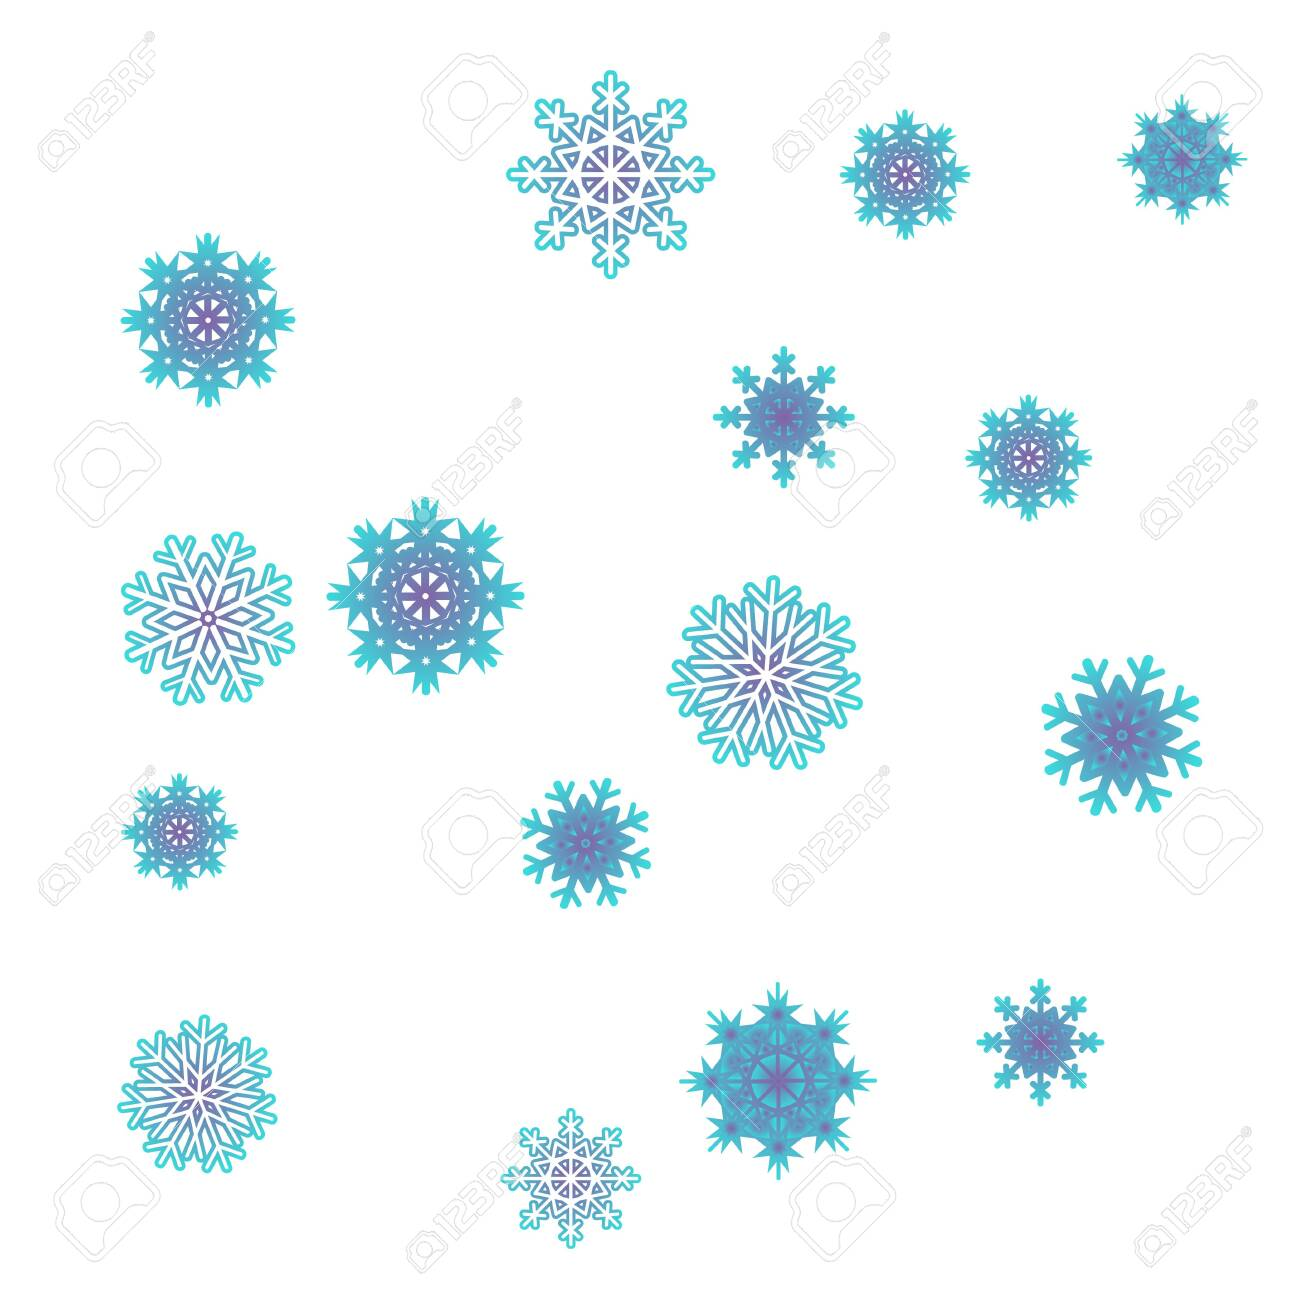 Christmas and New Year background vector with falling snowflakes. The effect of decorating snowflakes. Winter vacation. Well suited for a Christmas card, banner or poster. EPS 10 - 123038685